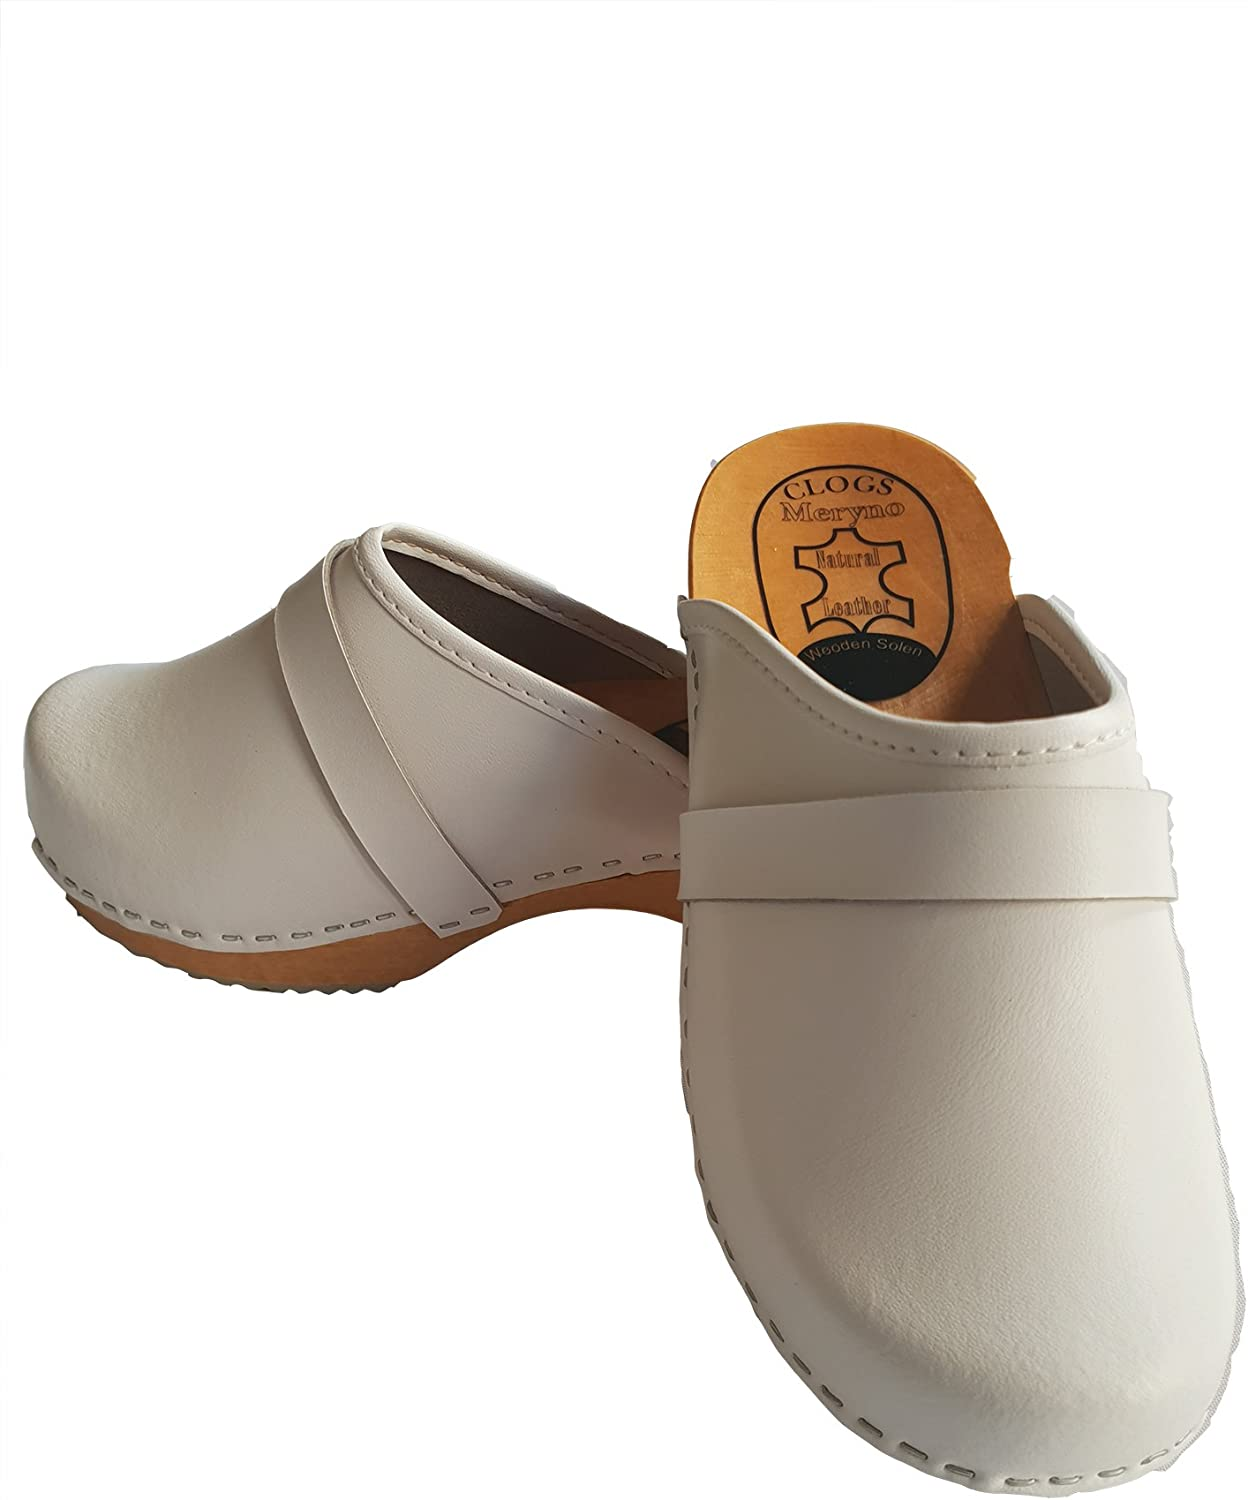 Women Hand Made Clog Wooden-Sole Genuine Leather P1